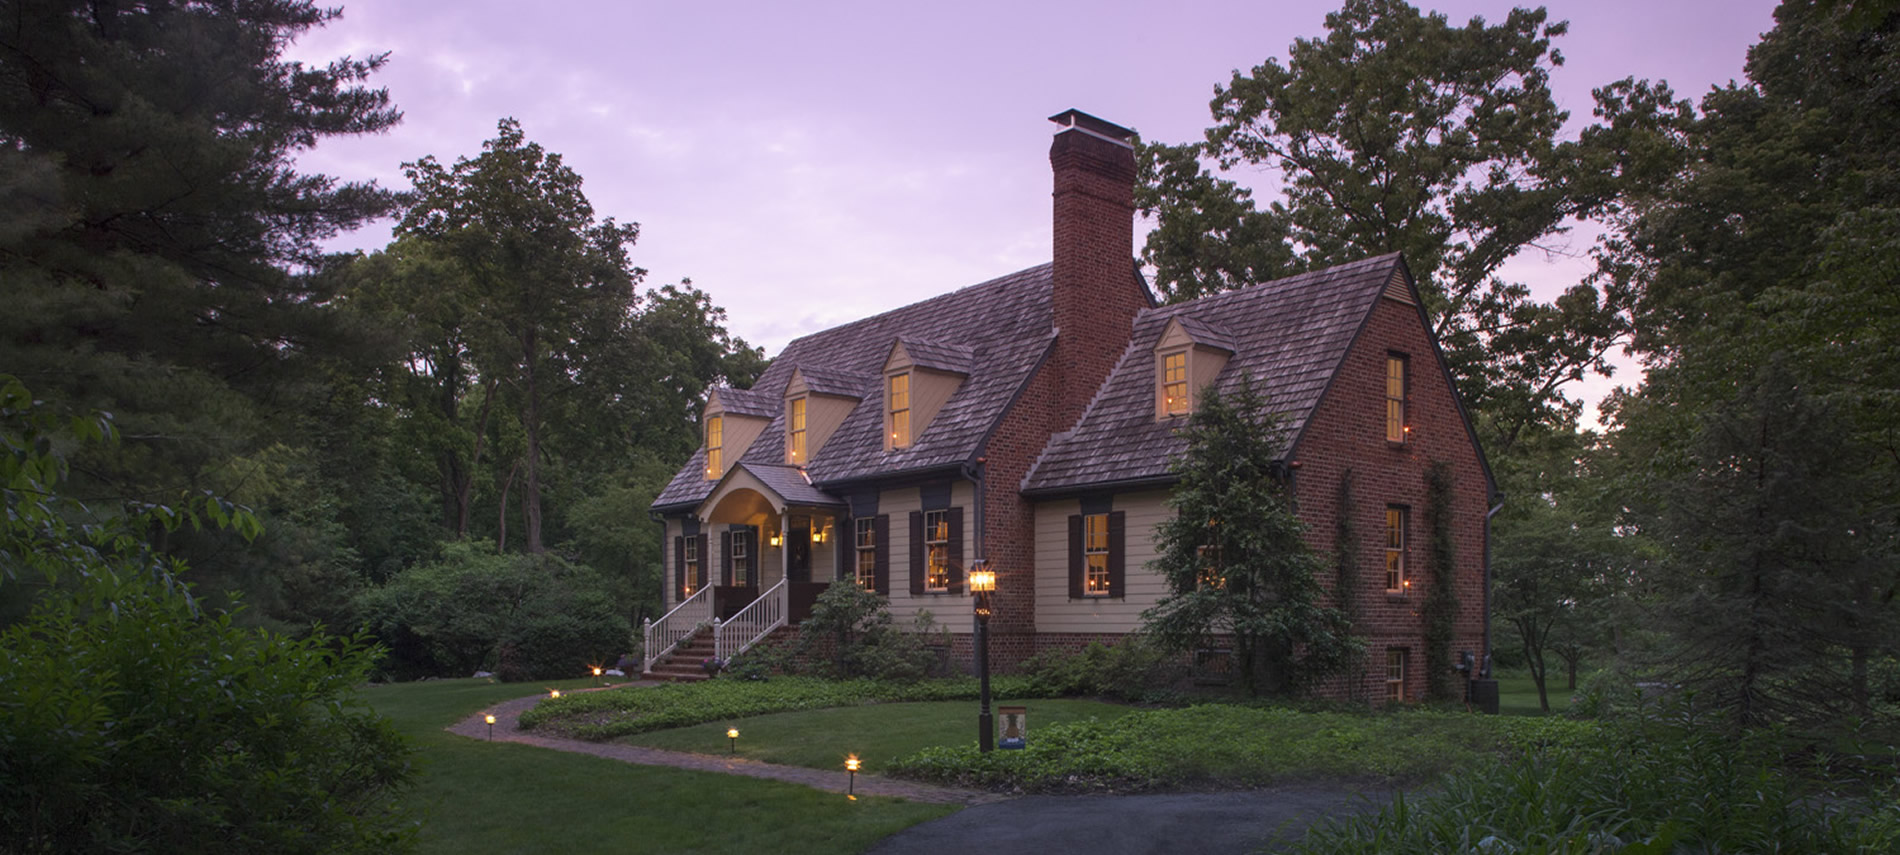 View of House near dark with light on